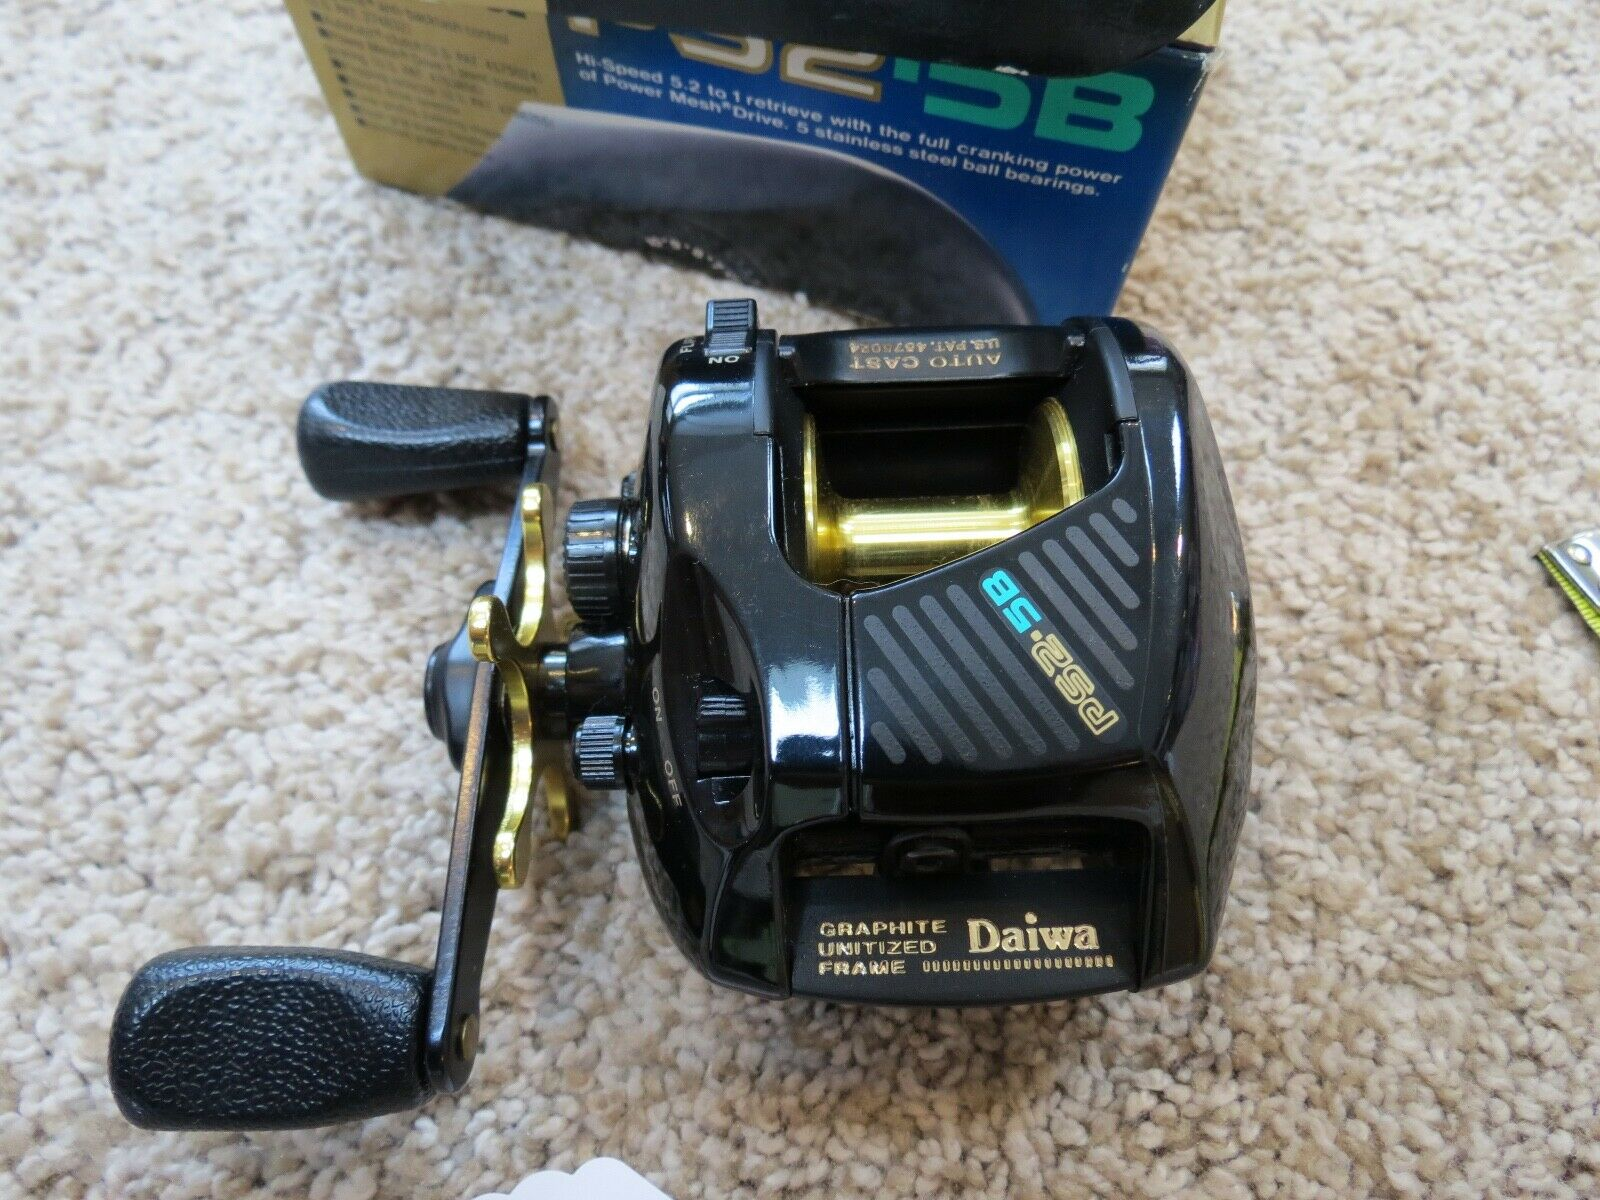 Daiwa PS2 5B Angeltrommel in Japan nie verwendet (Partie)